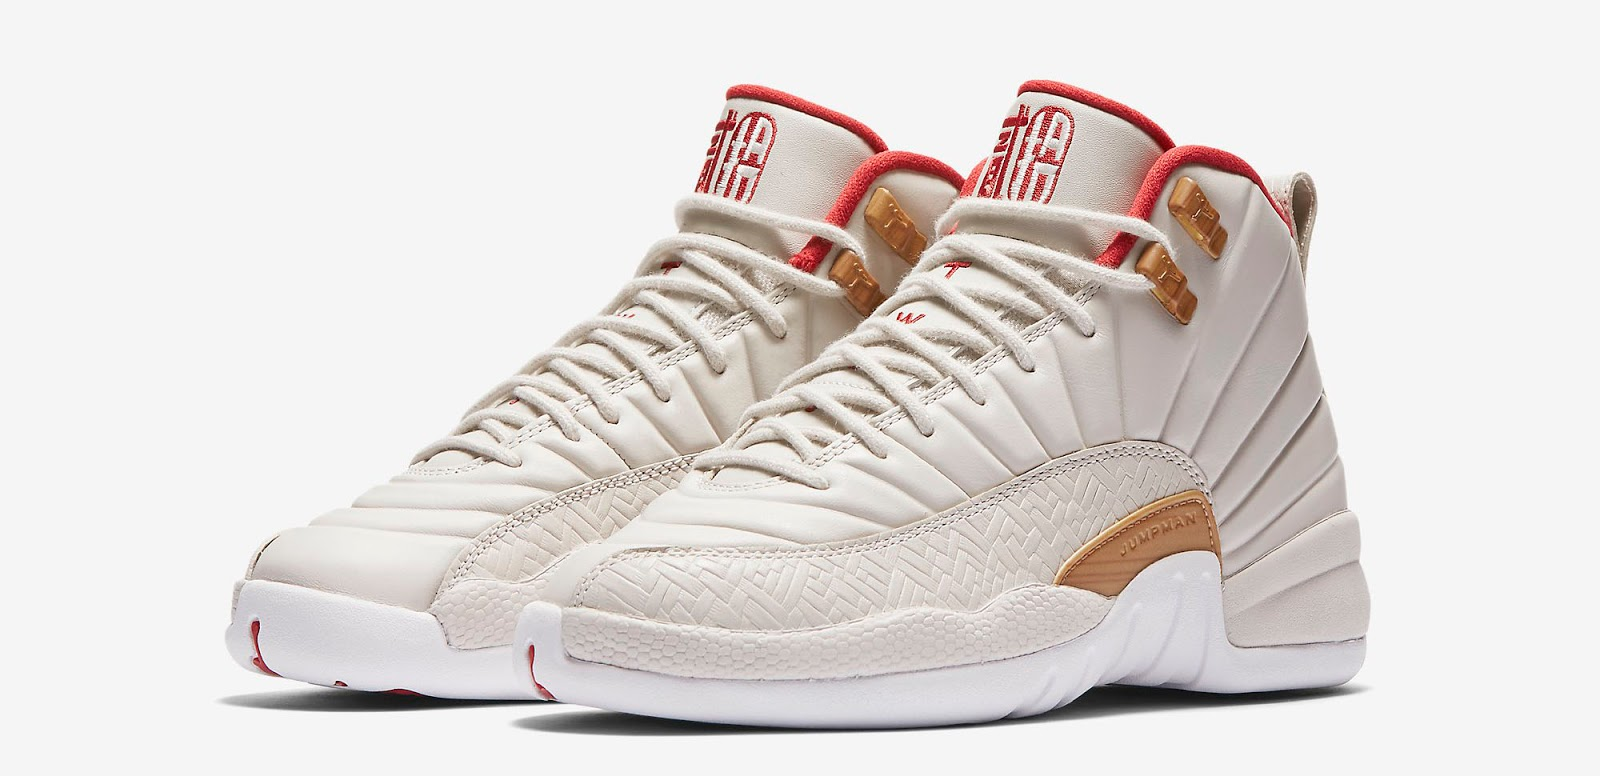 2d31c2619b6 Made to celebrate the 2017 Chinese New Year, this Girls Air Jordan 12 Retro  GG comes in a light orewood brown, varsity red and white colorway.